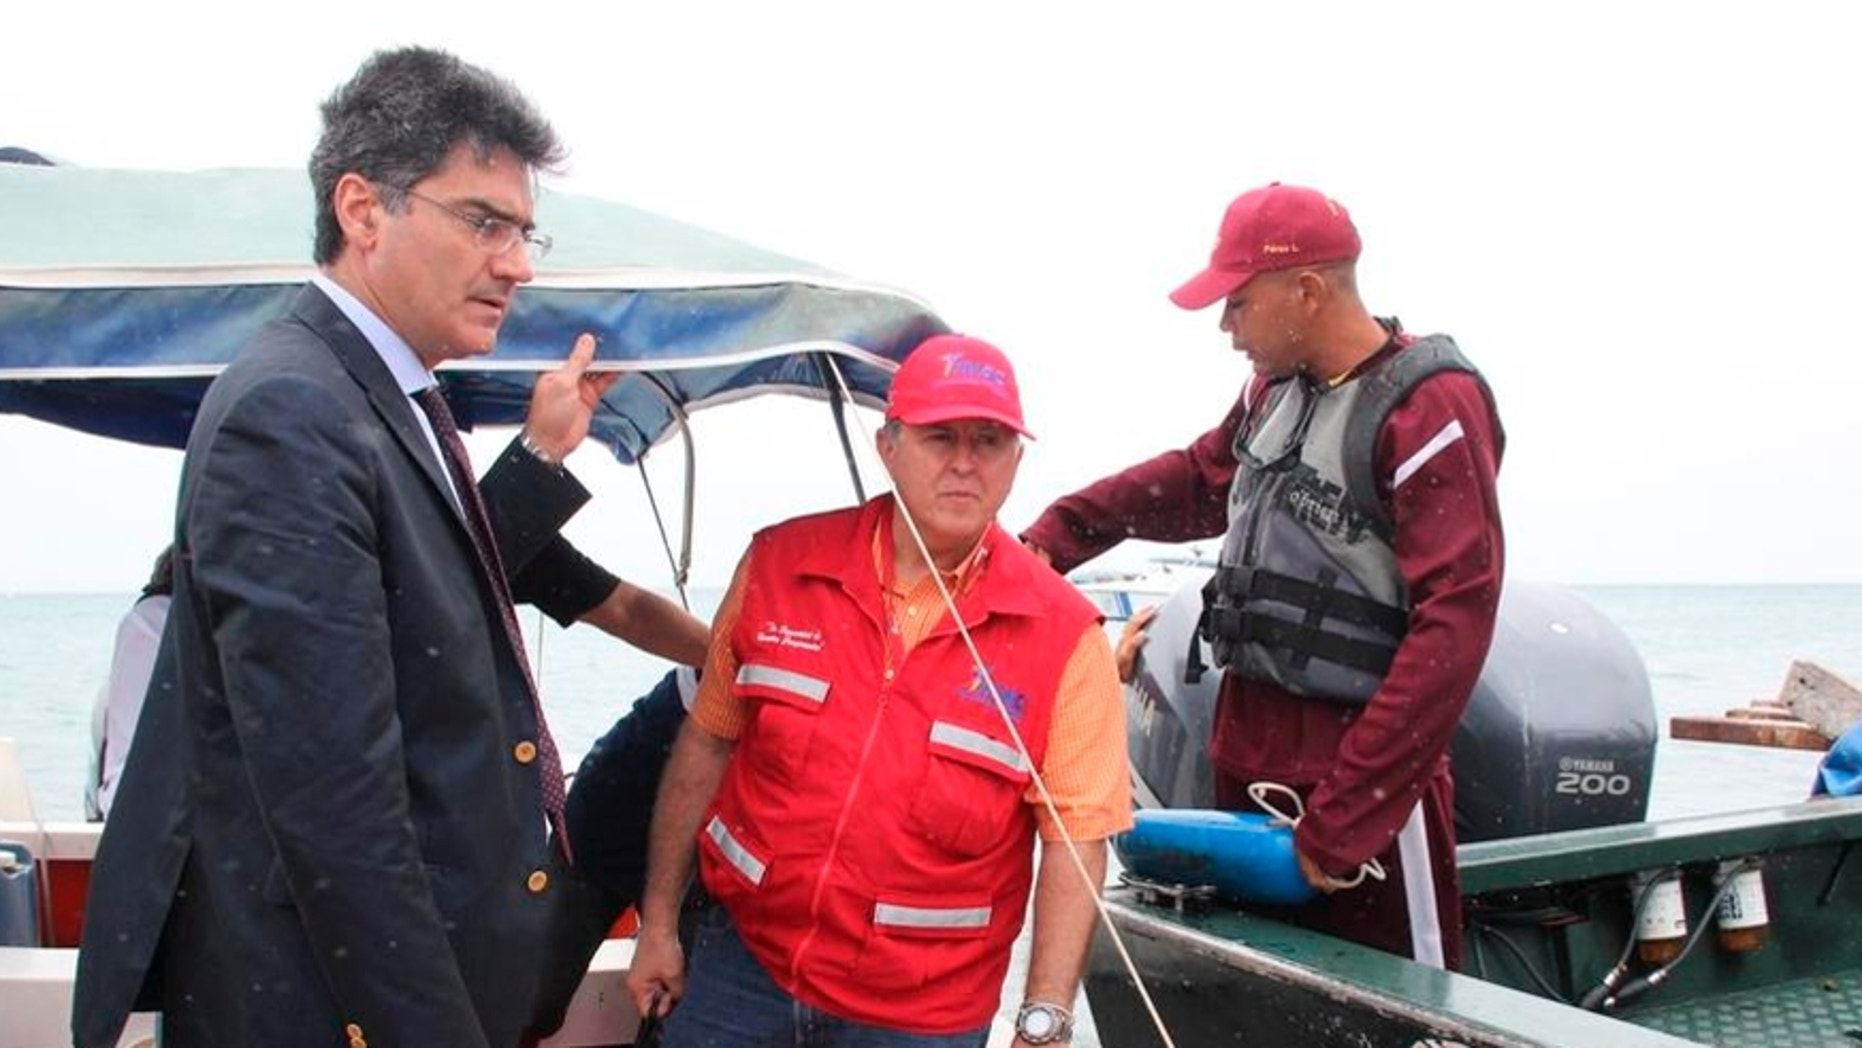 In this photo provided by Venezuela's Ministry of the Interior and Justice Press Office, Italy's ambassador to Venezuela Paolo Serpi, left, speaks with rescue team members prior to their continued search for a missing plane off Los Roques, Venezuela, Monday, Jan. 7, 2013.  The search for a missing plane carrying Italian fashion executive Vittorio Missoni and five other people has entered its fourth straight day on Monday with no signs of the aircraft. The small, twin-engine plane was reported missing hours after taking off Friday from Los Roques, a string of islands and islets popular among tourists for their white beaches and coral reefs.  (AP Photo/Venezuela Ministry Interior and Justice Office Press)